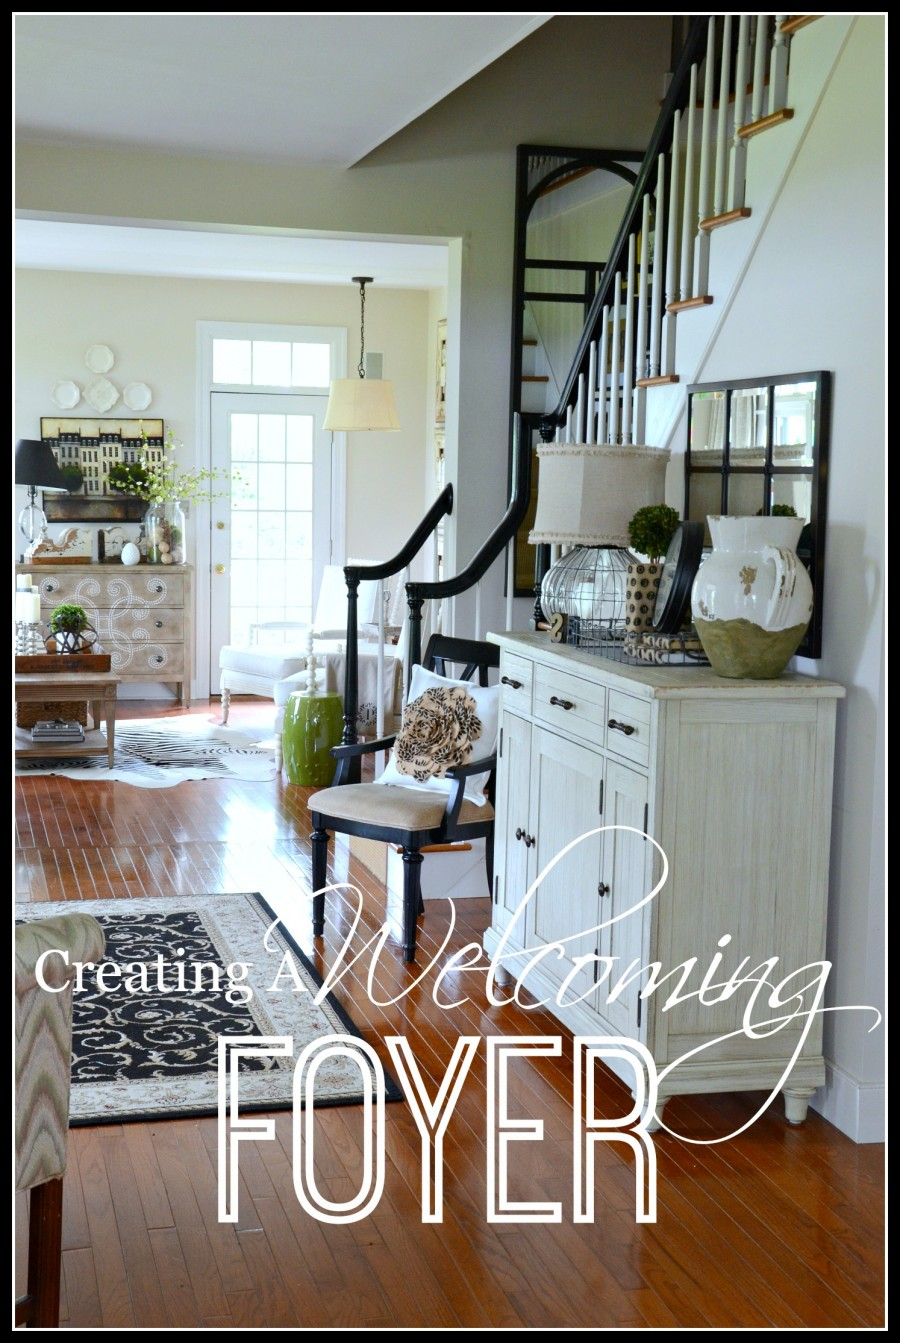 Dining Room Foyer Ideas : Creating a welcoming foyer stonegable